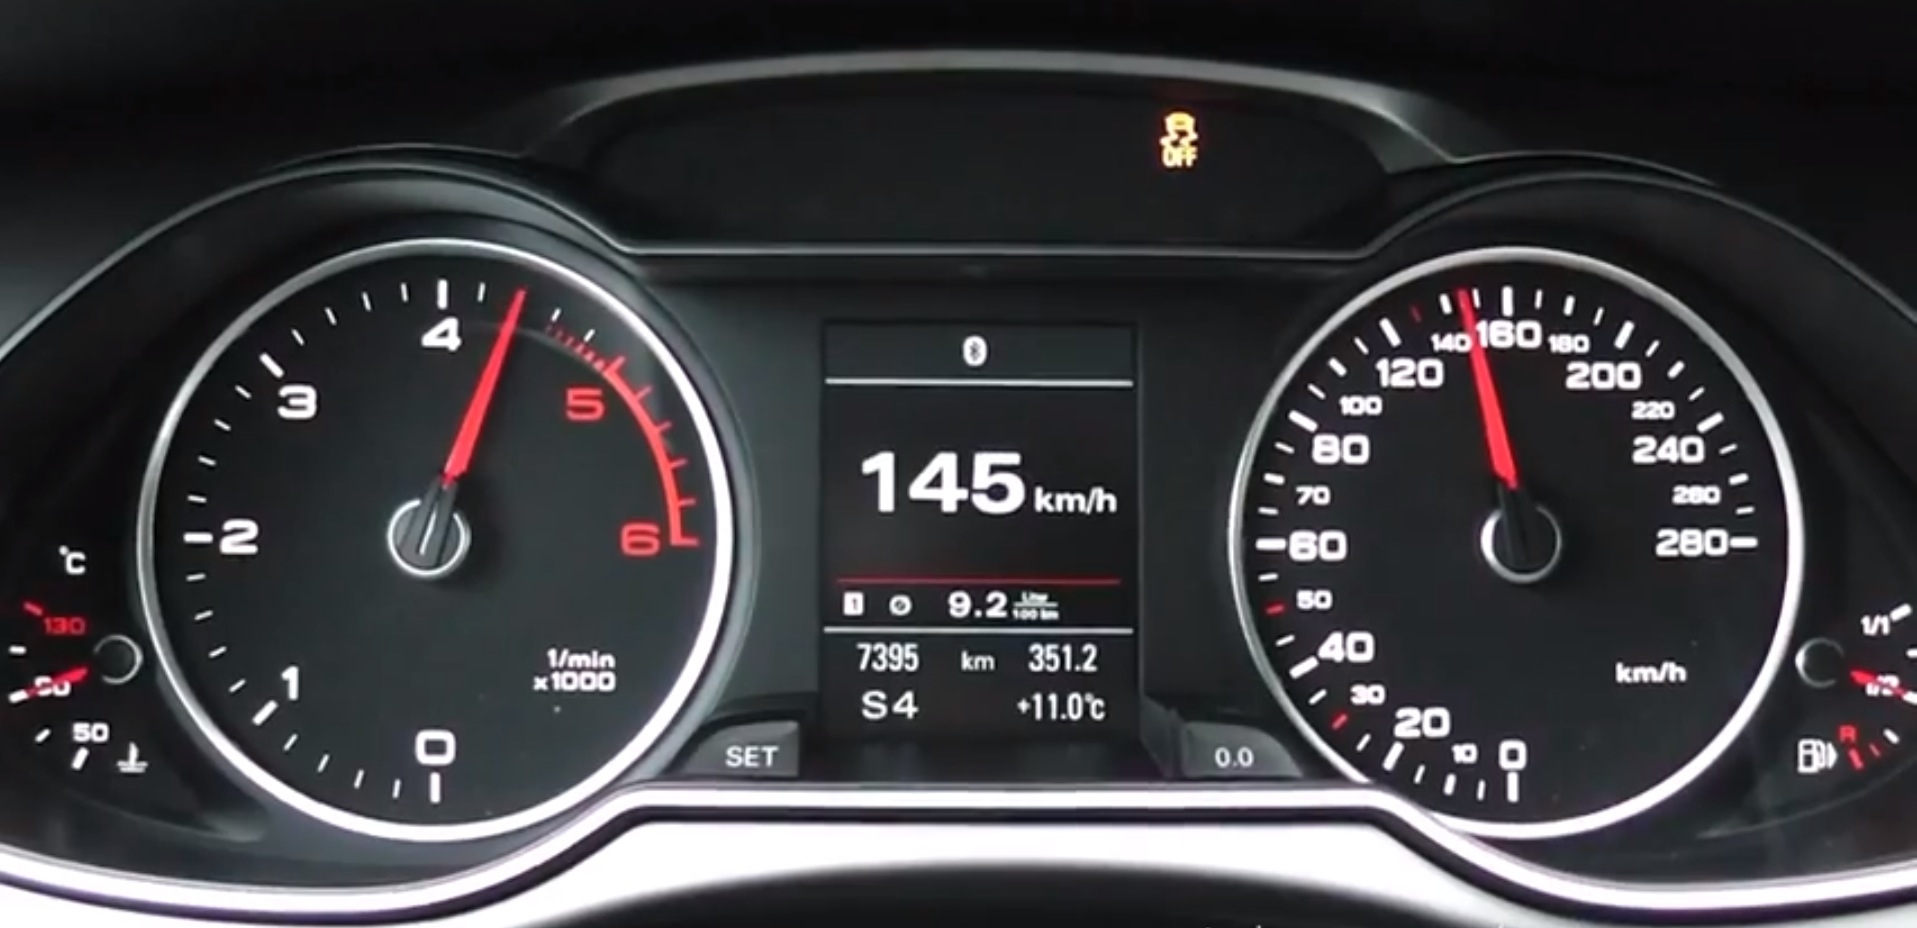 2014 Audi A4 3 0 Tdi 245 Hp Acceleration Test With Launch